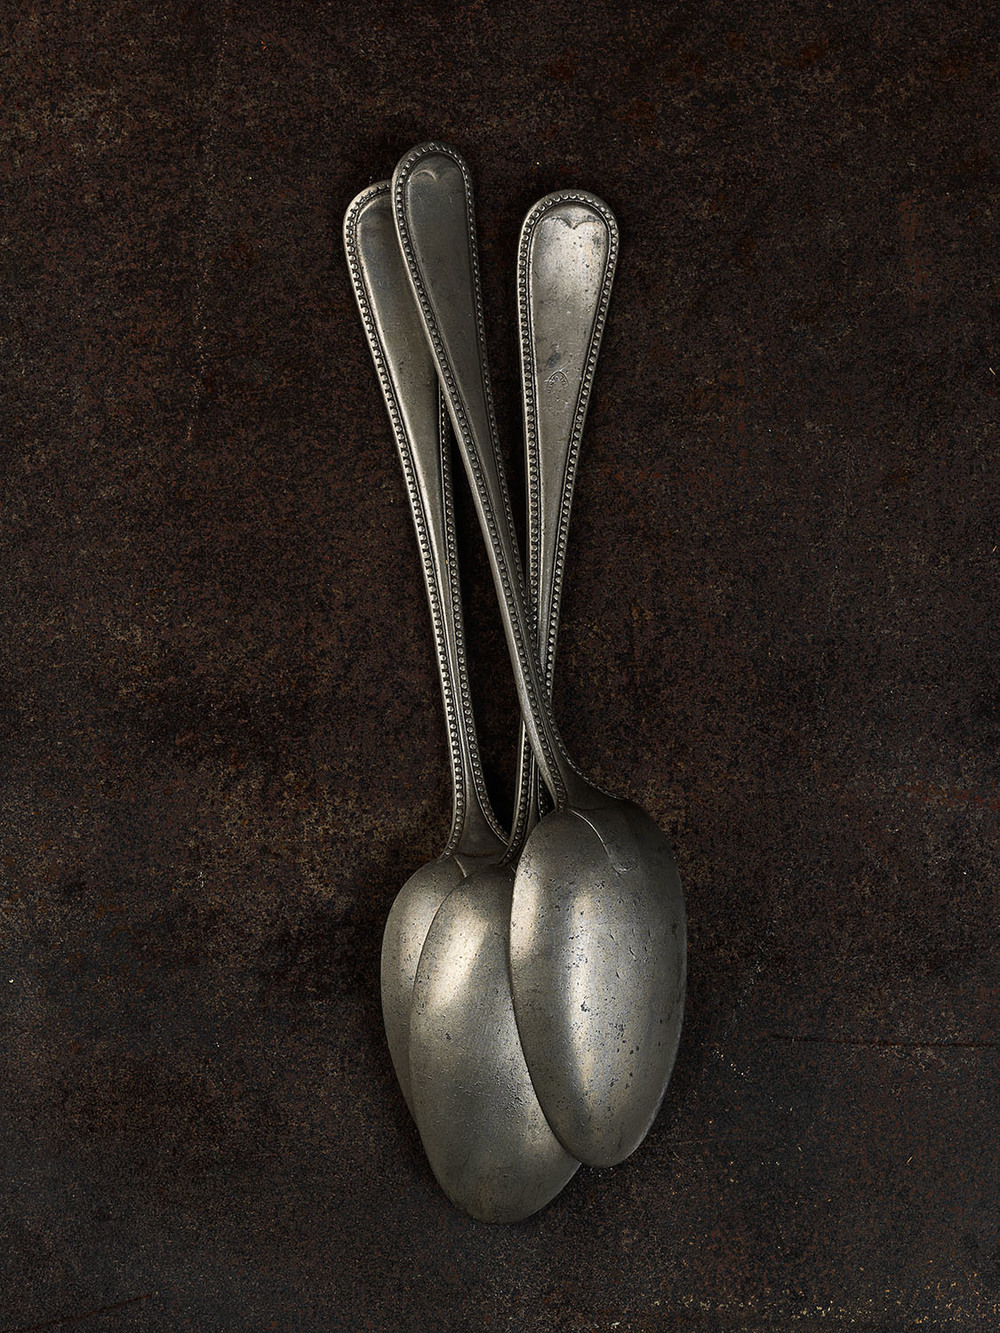 #48 Three Pewter Spoons